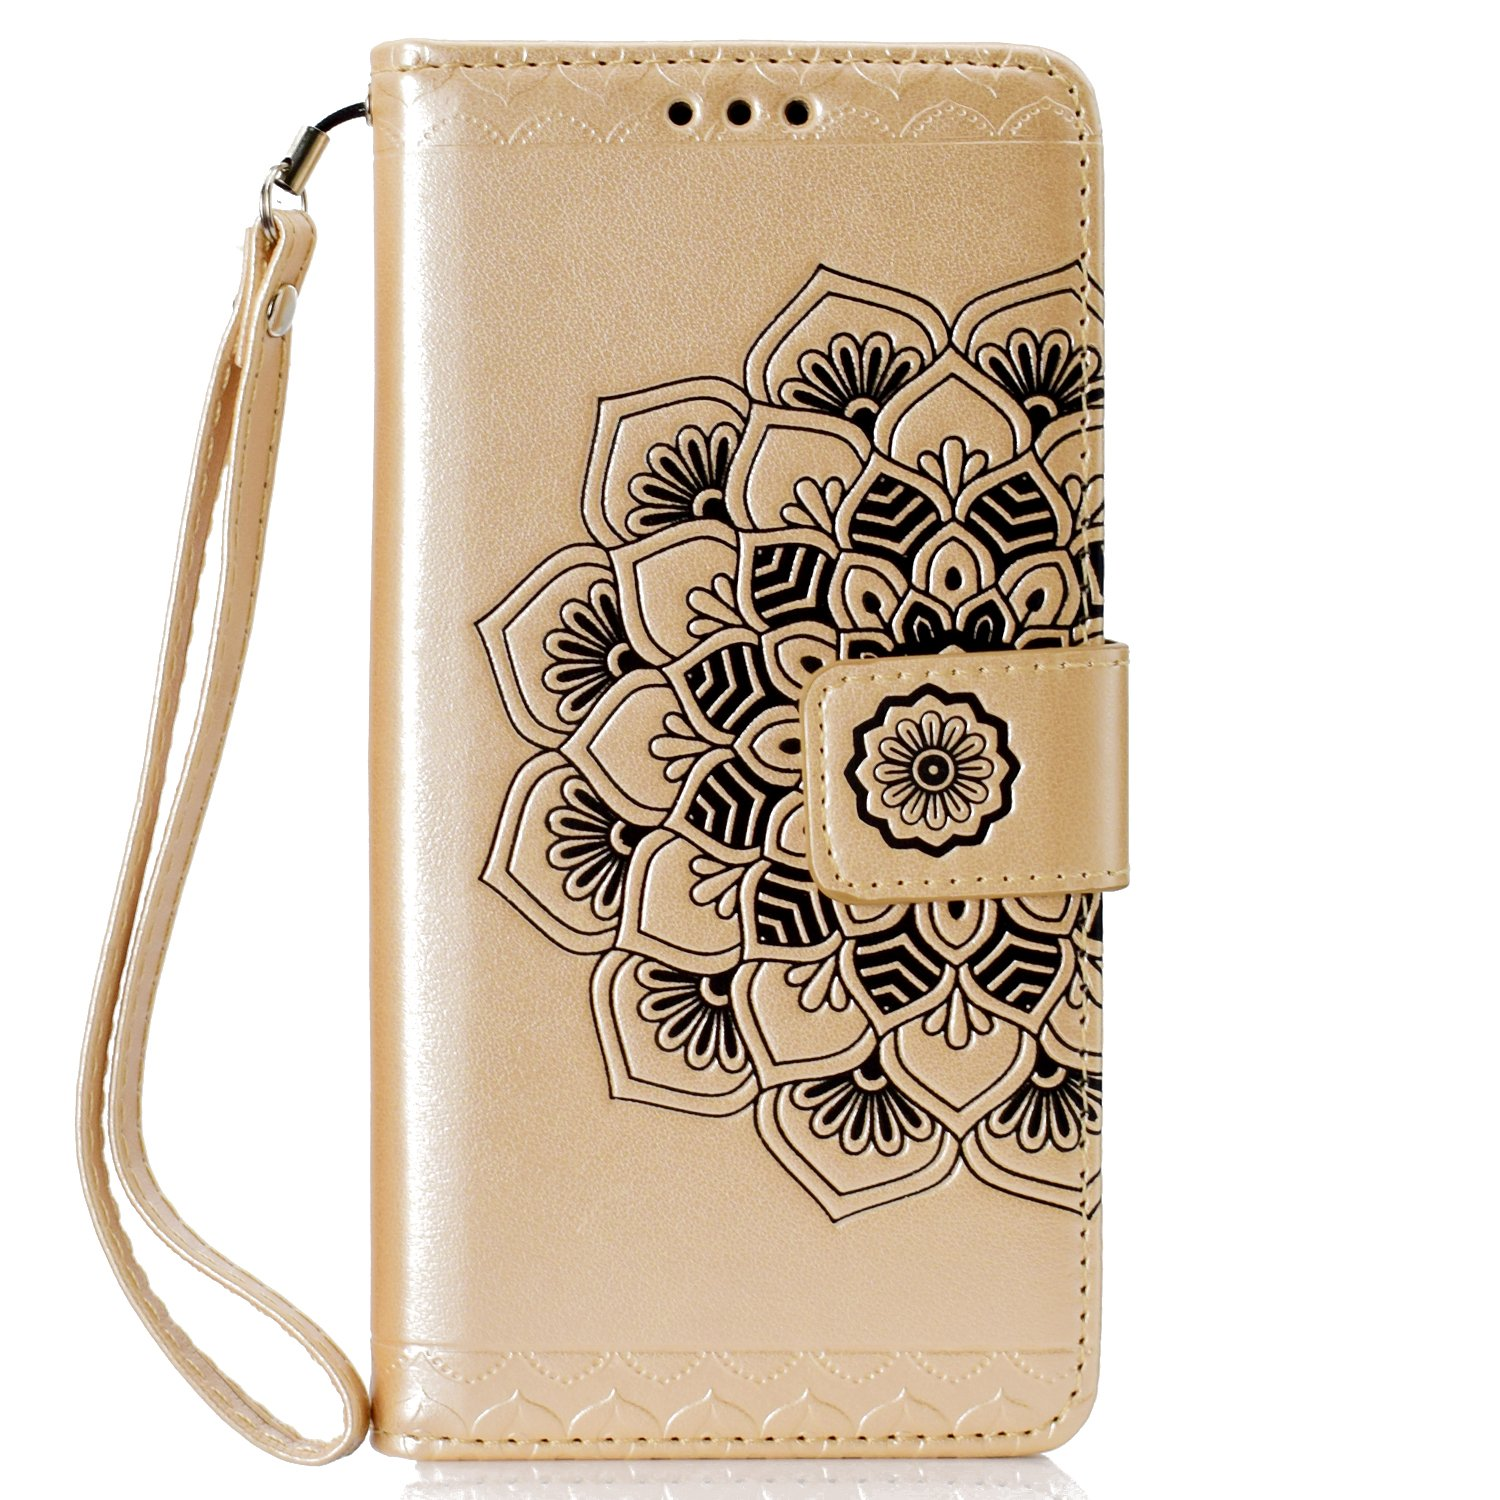 Herbests Coque pour Huawei Honor 7C, Coque Huawei Y7 Prime 2018 Cuir Portefeuille, Huawei Y7 2018 Coque de Protection en Cuir Folio Housse Fermeture Magnétique Housse Etui de Protection pour Homme Femme Fille Ultra Slim Mince Anti-choc Anti-rayures Pure Le